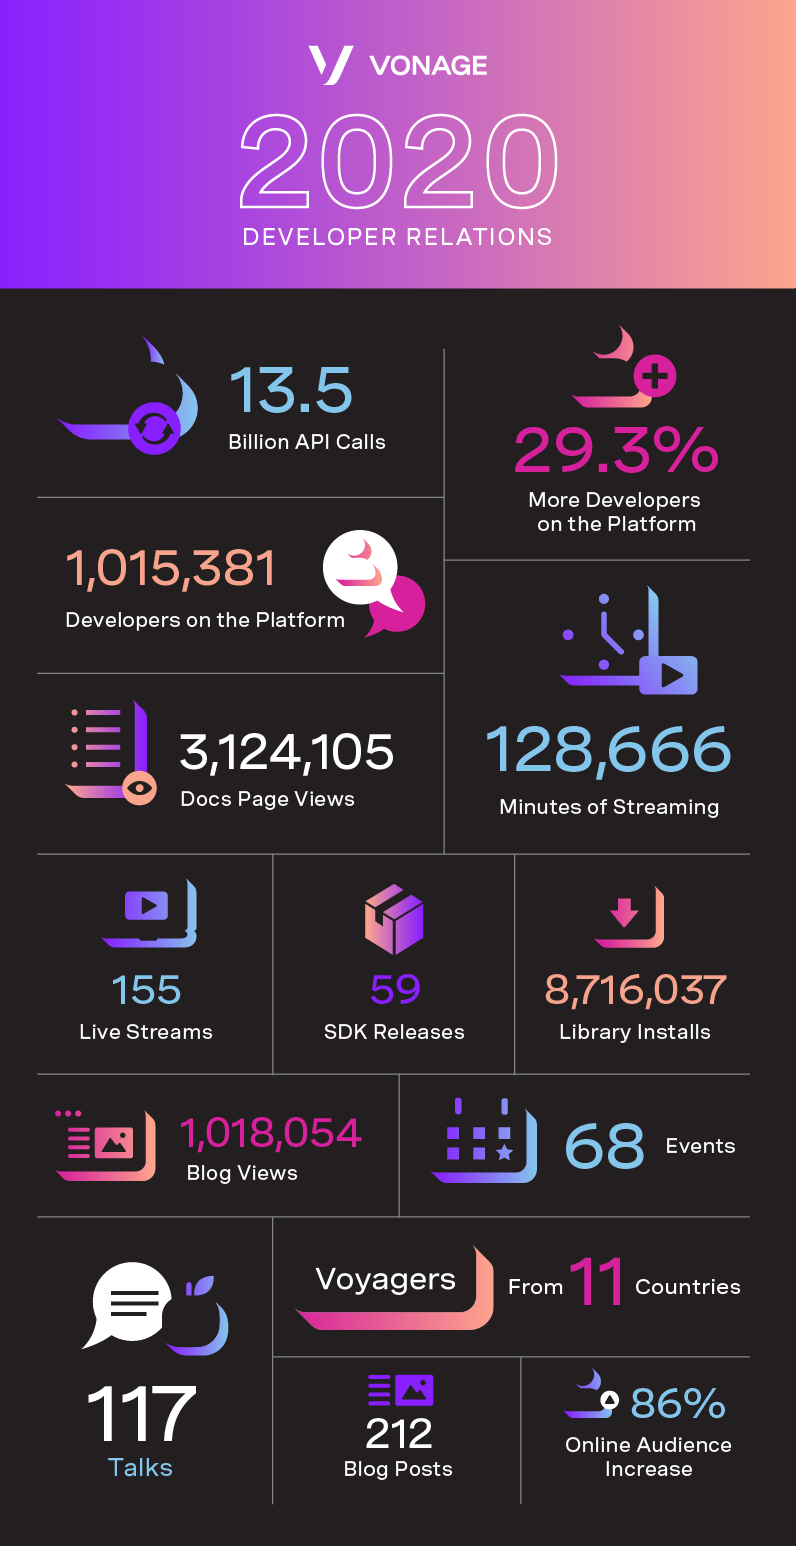 Our 2020 In Numbers - An Infographic from the Vonage Platform & Developer Experience Team